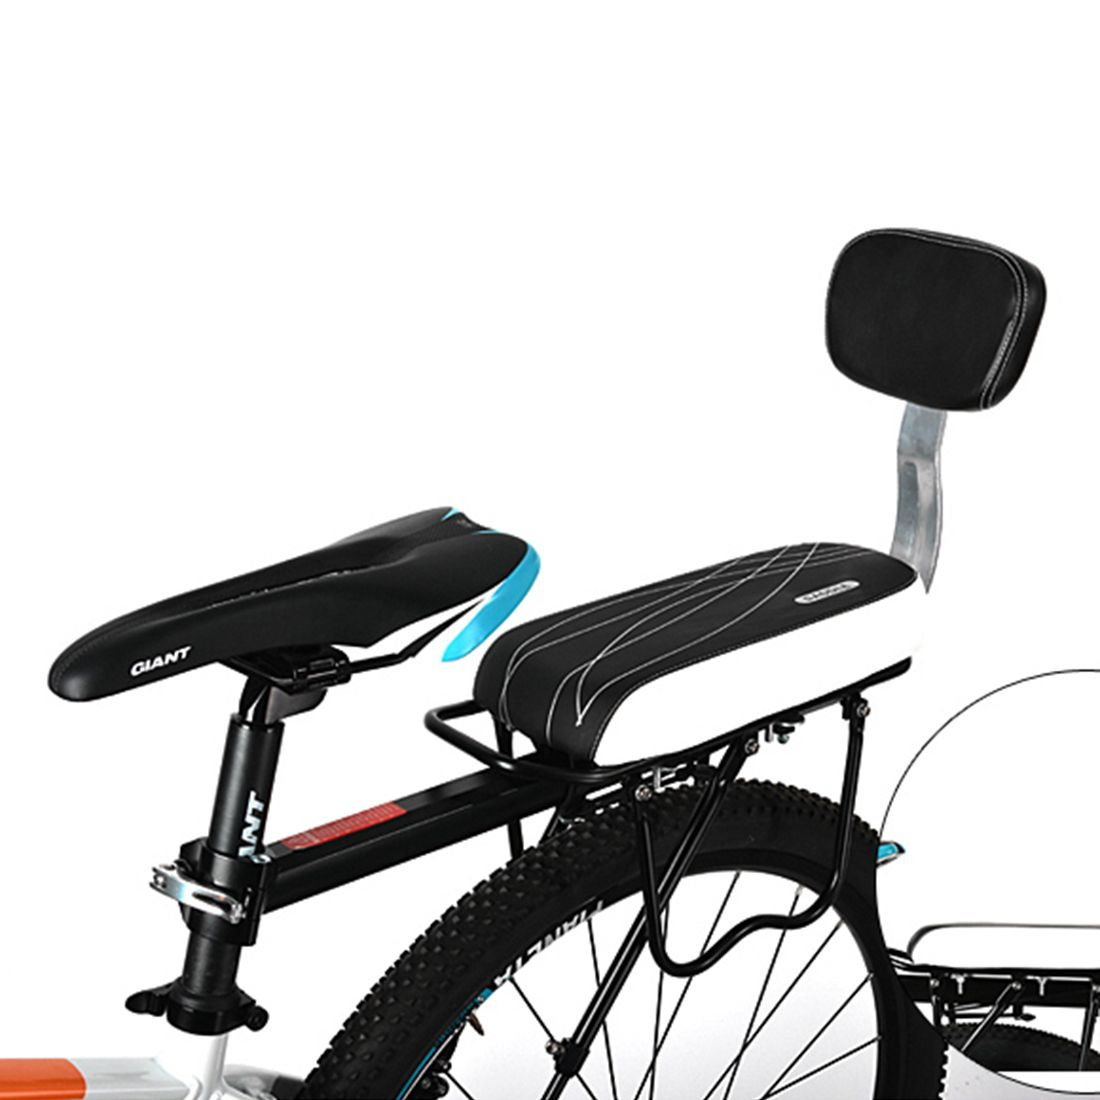 Baby chair on bike - Bicycle Child Seat Pu Leather Cover Bike Rack Cushion For Kid S Bicycle Seat